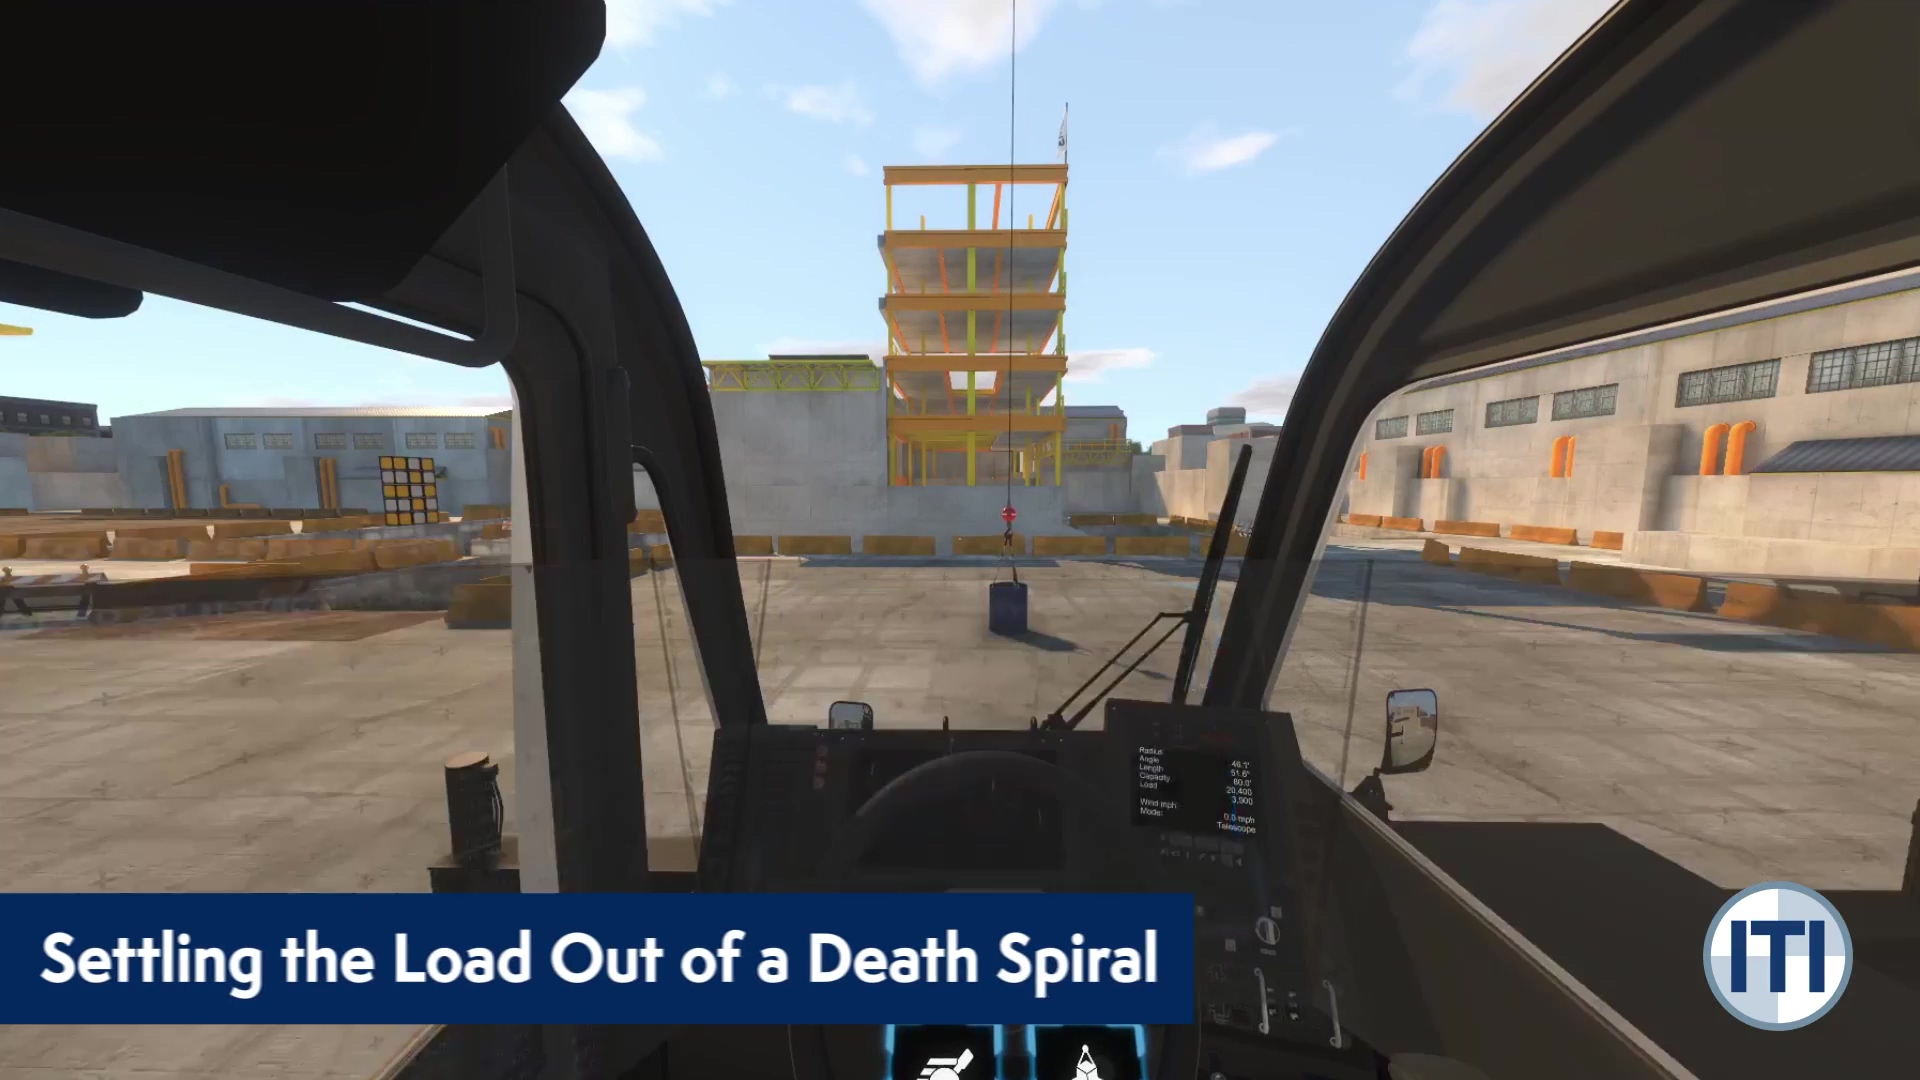 4. Settling the Load Out of a Death Spiral